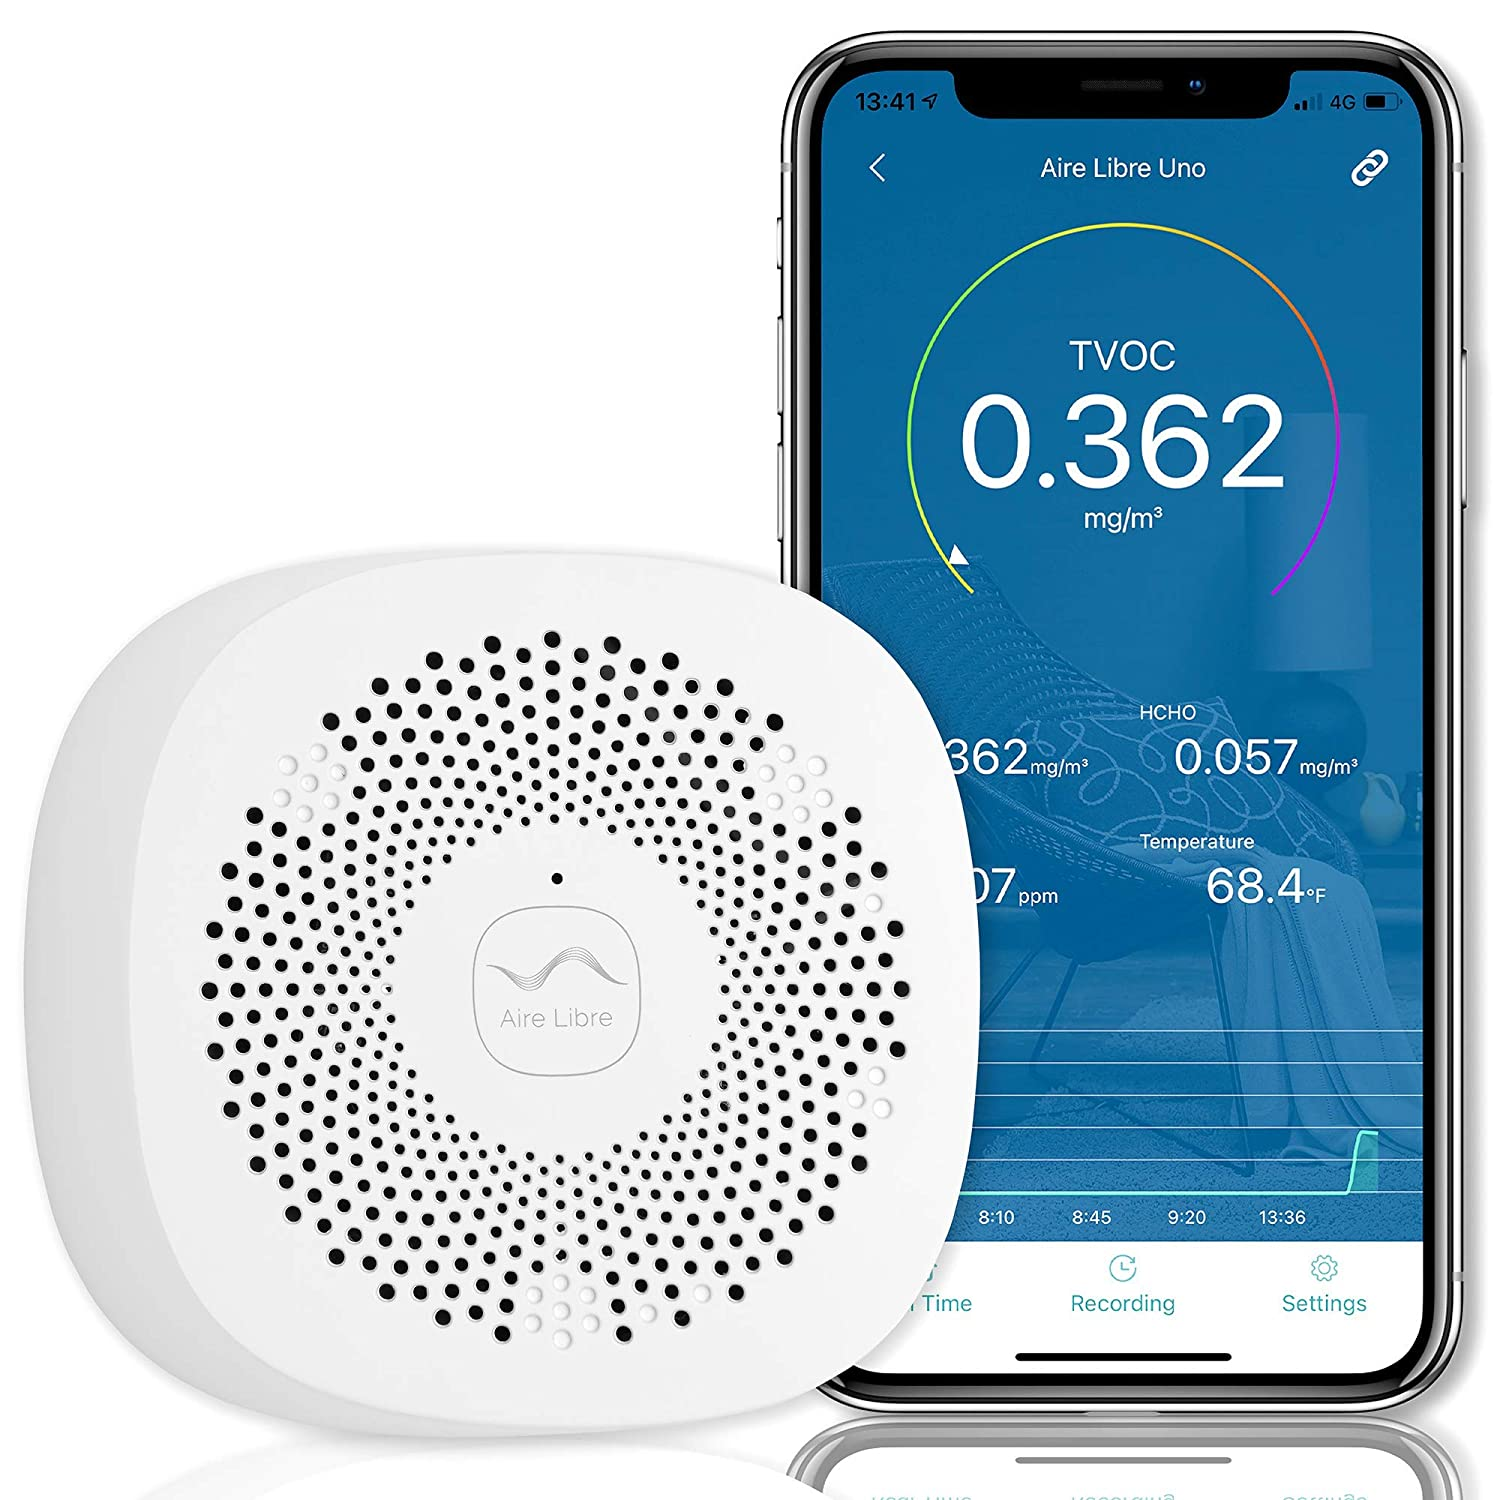 Indoor Air Quality Monitor - 24/7 Indoor Air Quality Detector - Historical Data. Monitor TVOC, Formaldehyde, CO2 and Indoor Temperature from the App